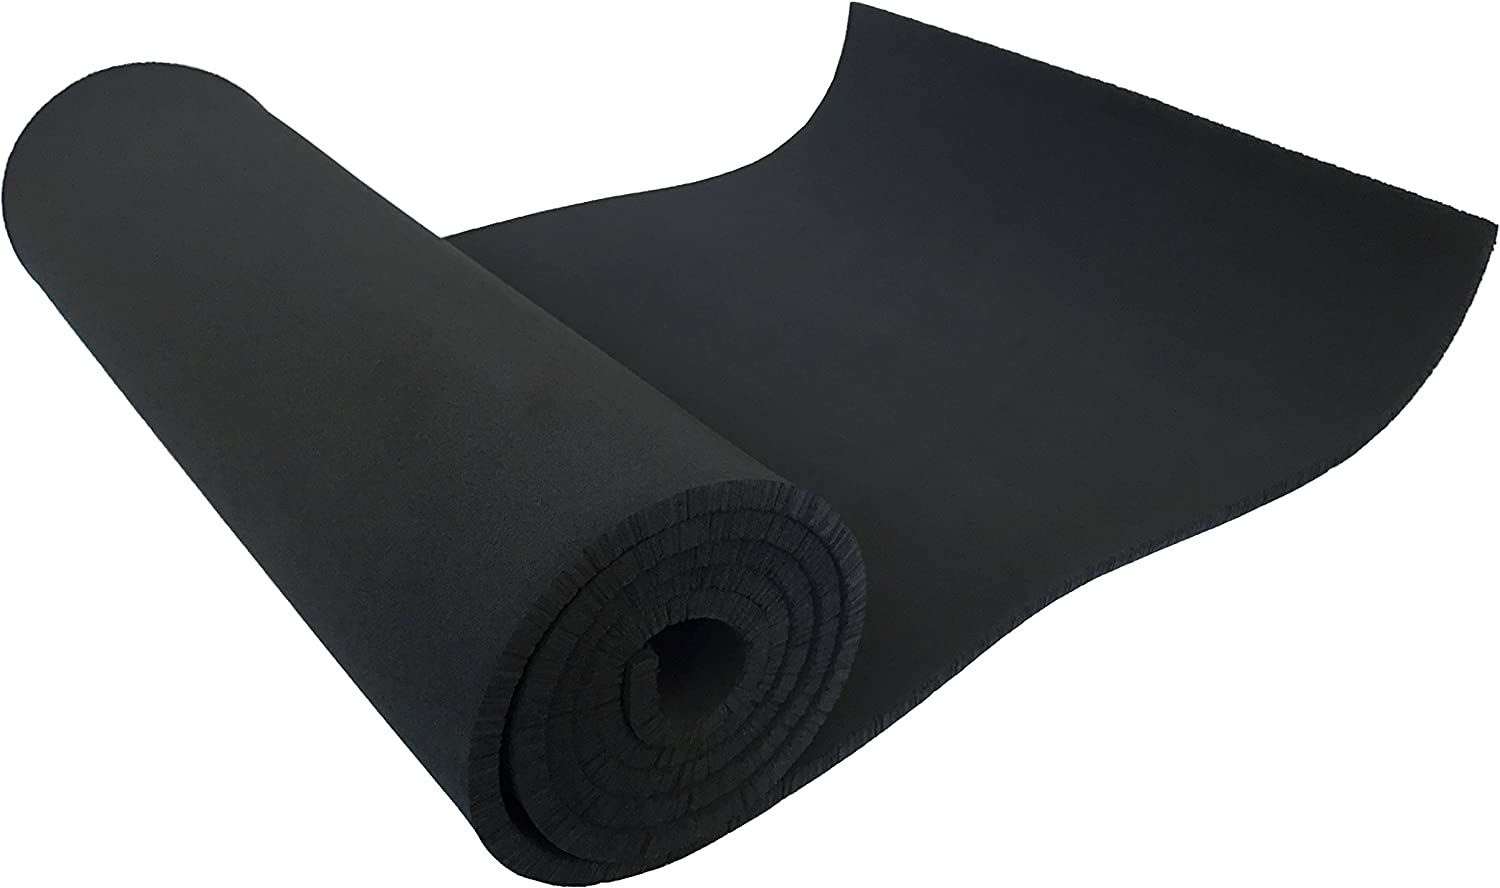 """Xcel Large Neoprene Foam Sheet - 54"""" Wide x 12"""" Length x 1/4"""" Soft/Medium for Cosplay, Costume, Padding, DIY, and Gaskets, Made in USA, Easy Cut Technology"""